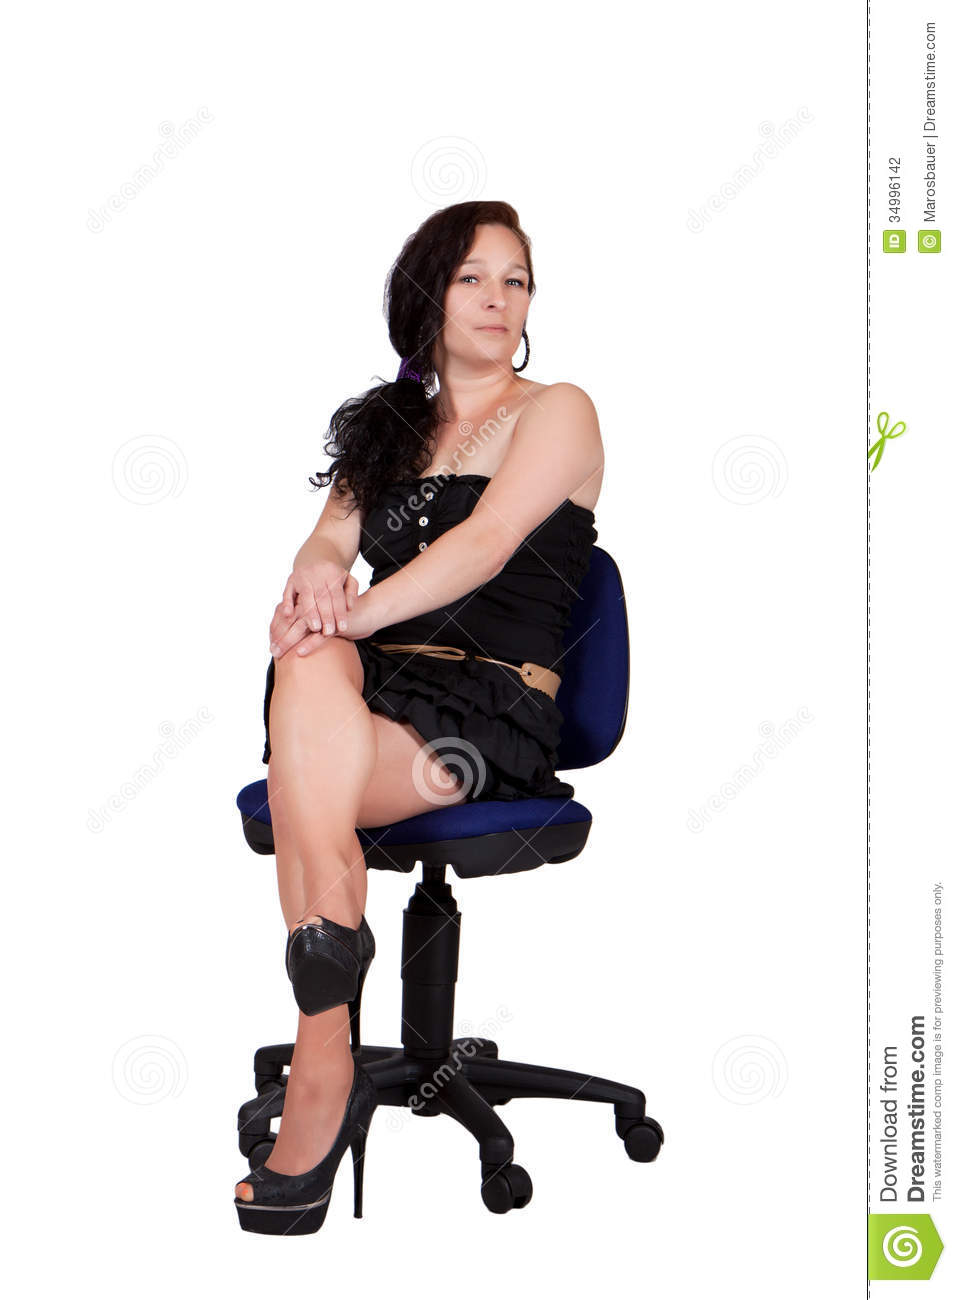 swivel office chair plans christmas covers for chairs long-haired woman on a stock photography - image: 34996142